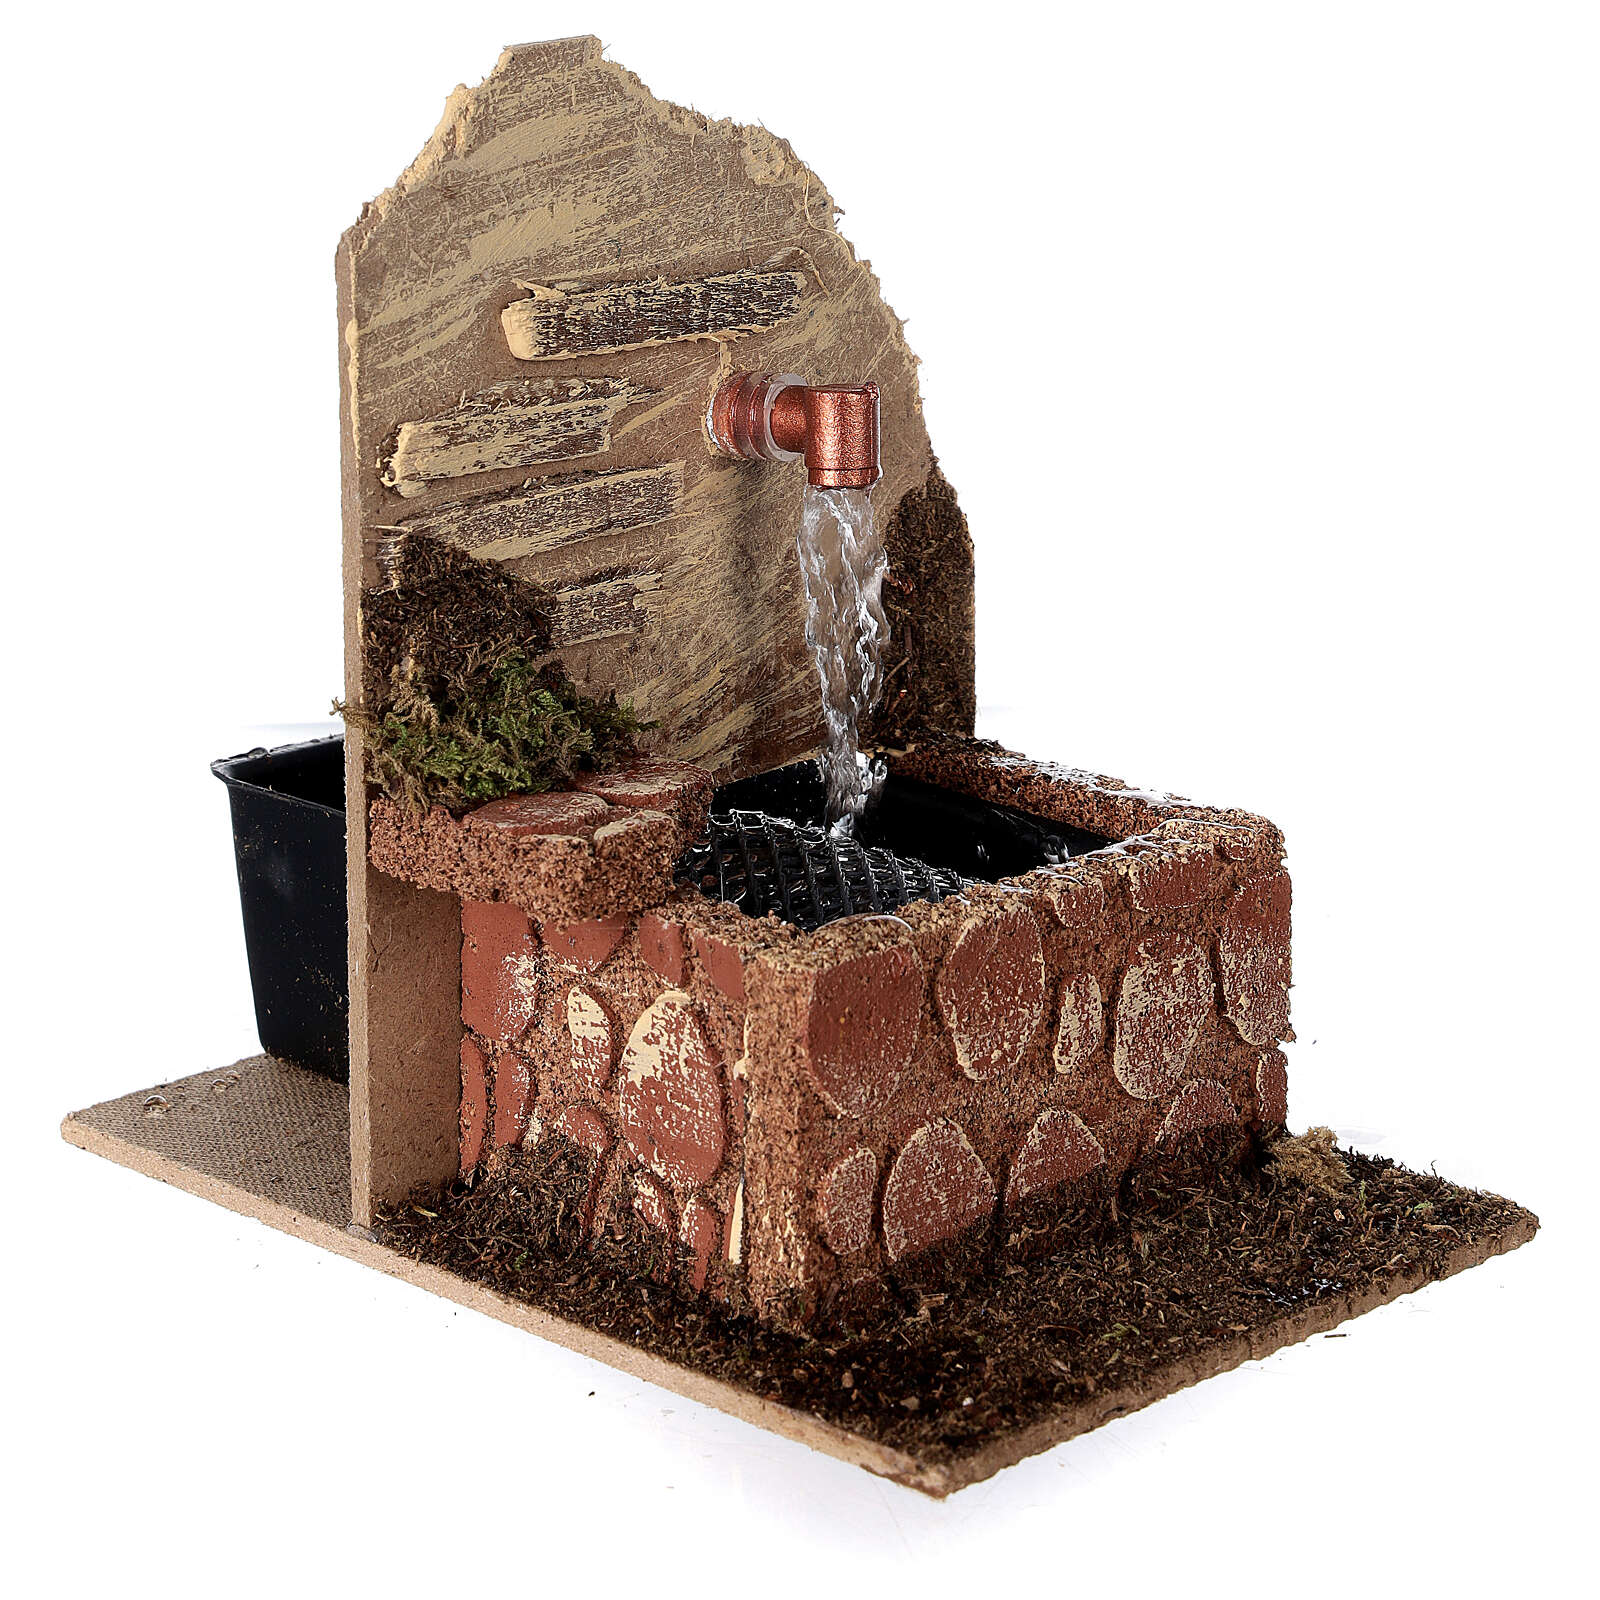 Fountain with pump 15x10x15 cm nativity scene 10-12 cm 4